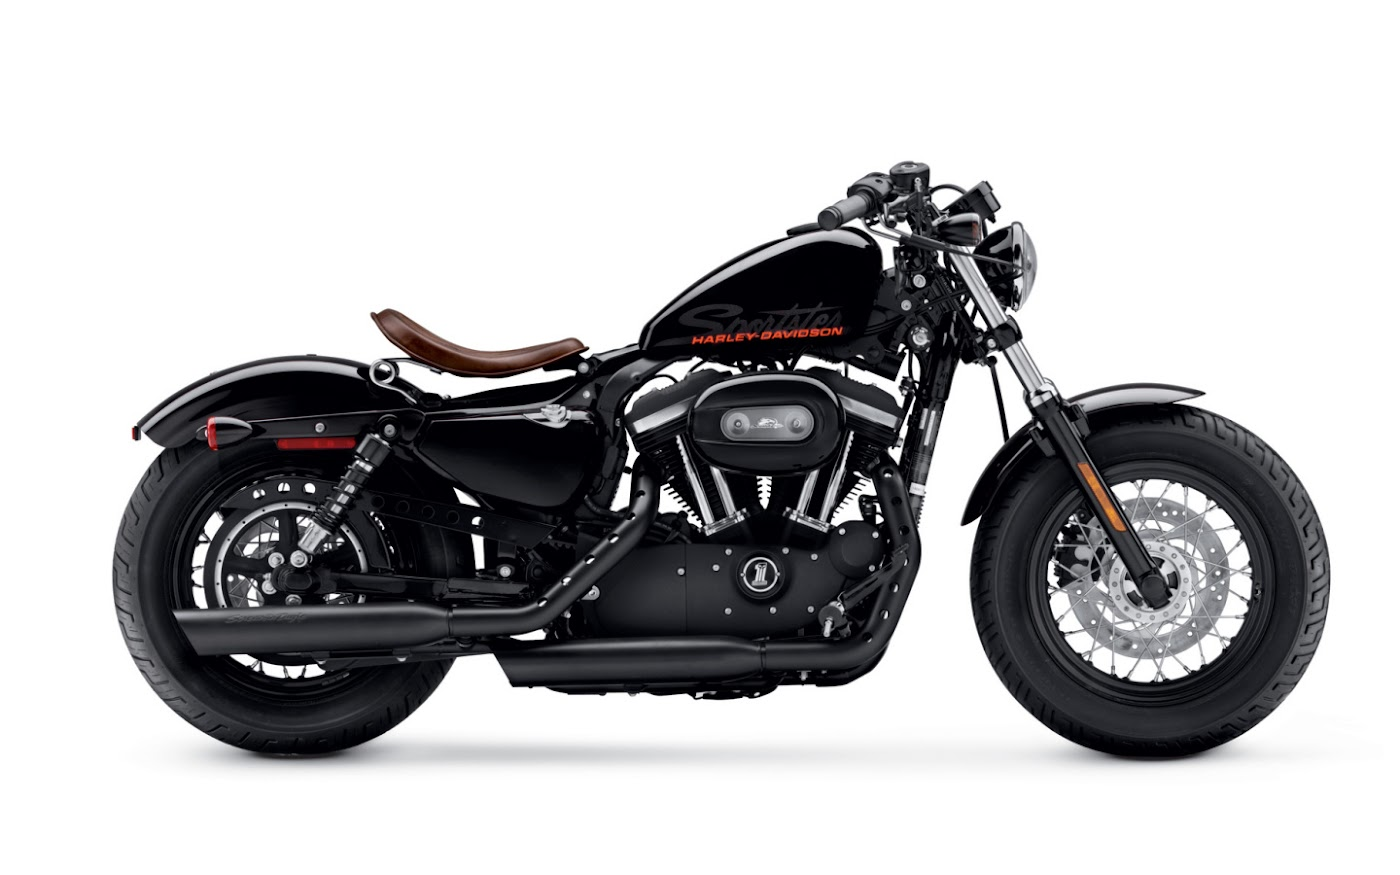 harley davidson xl 1200 x sportster forty eight harley davidson wallpaper. Black Bedroom Furniture Sets. Home Design Ideas